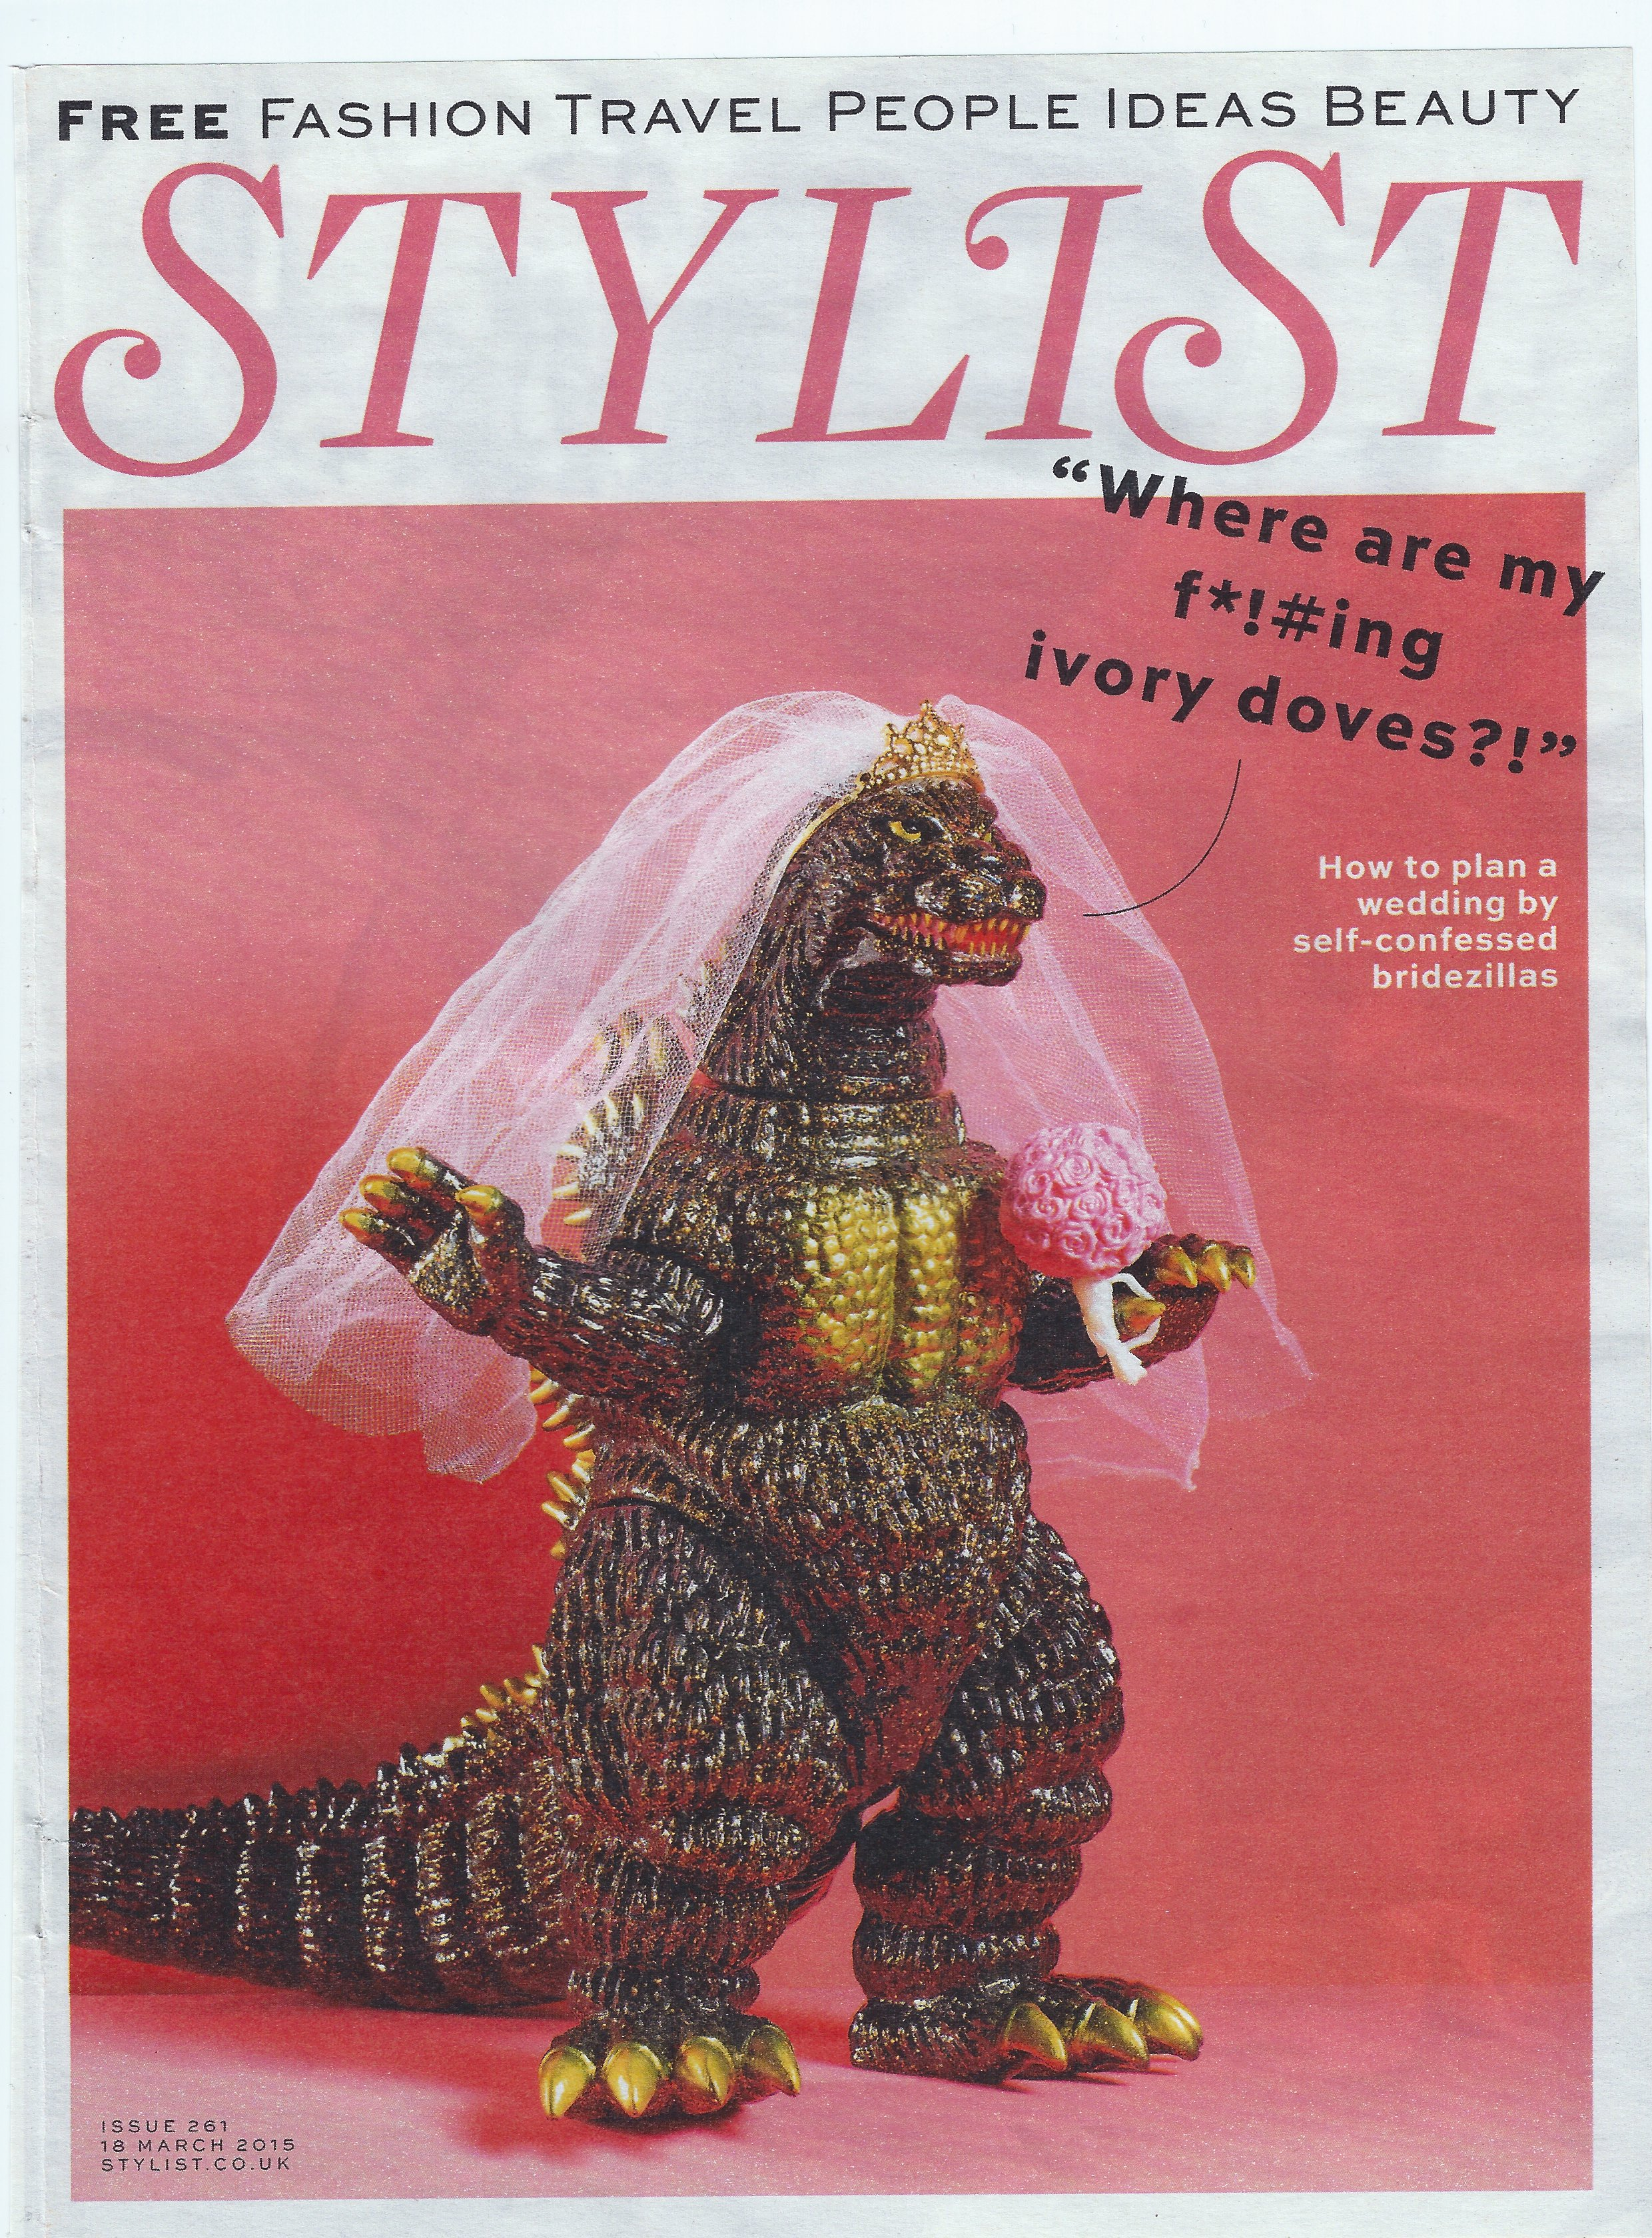 5A.STYLIST COVER.JPG